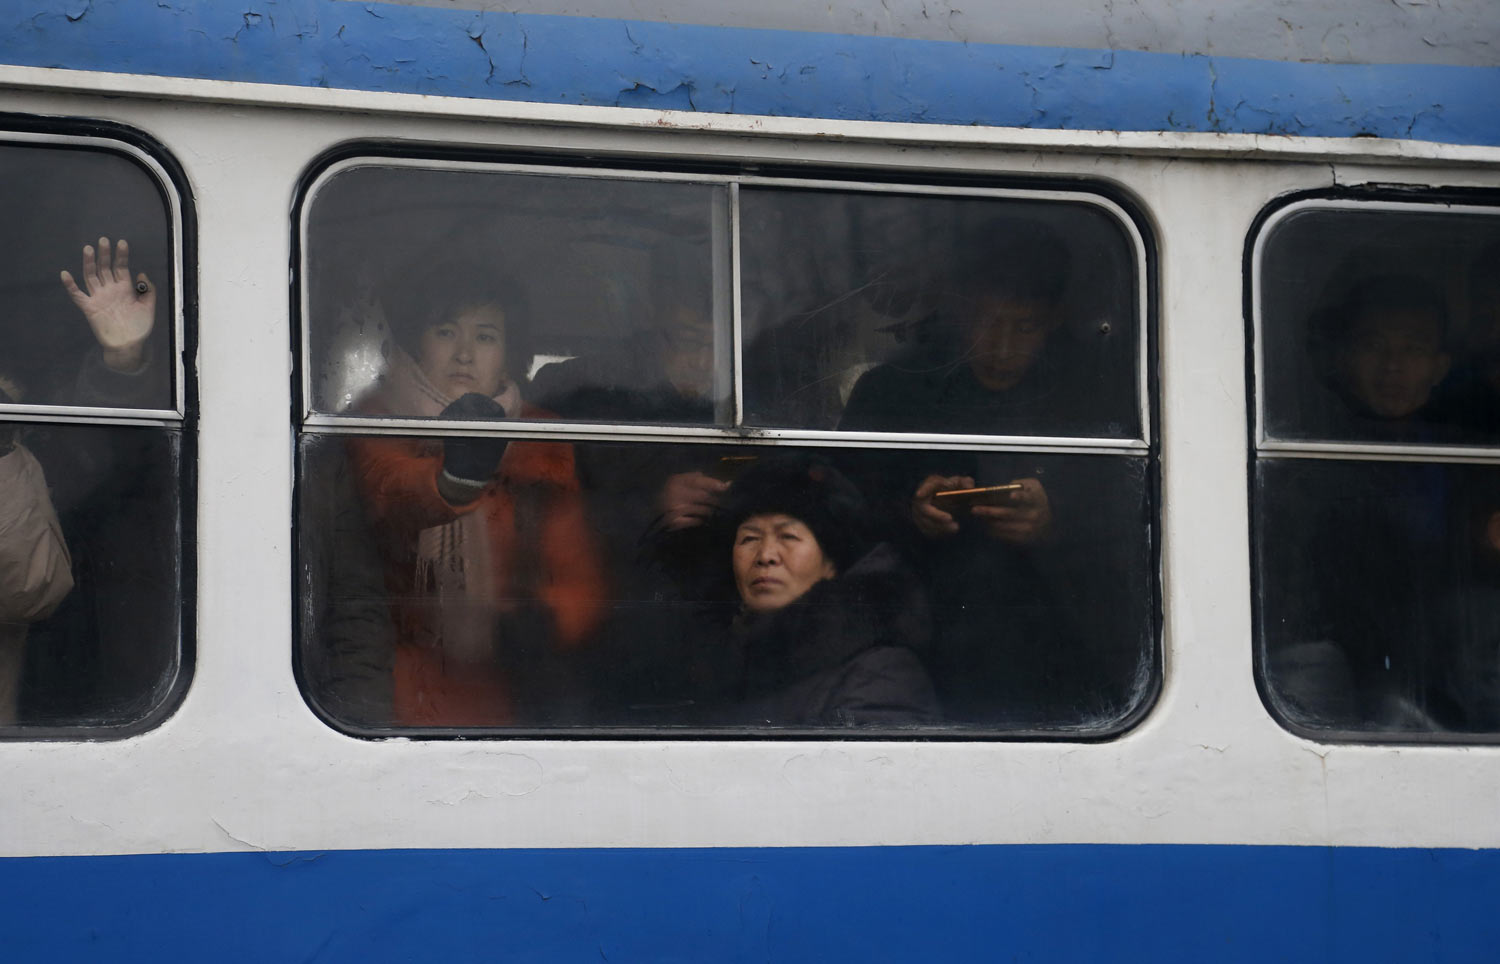 Passengers ride on a crowded tram in downtown Pyongyang, North Korea, Sunday, Feb. 3, 2019. (AP Photo/Dita Alangkara)